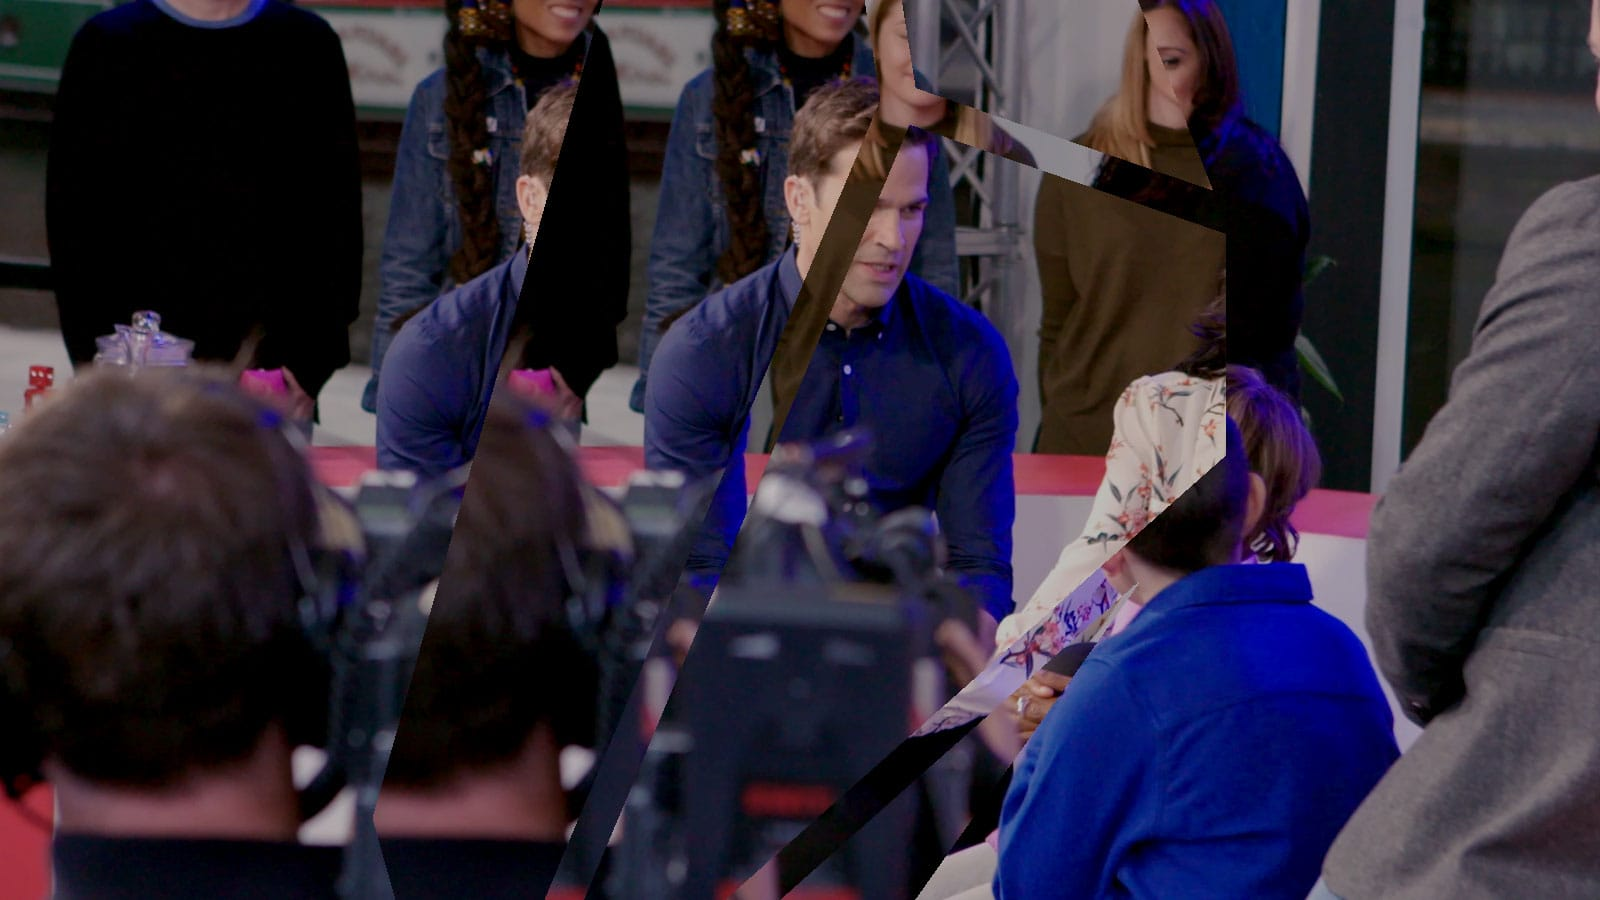 Image of live recording for natwest, we see the presenter talking to some women.